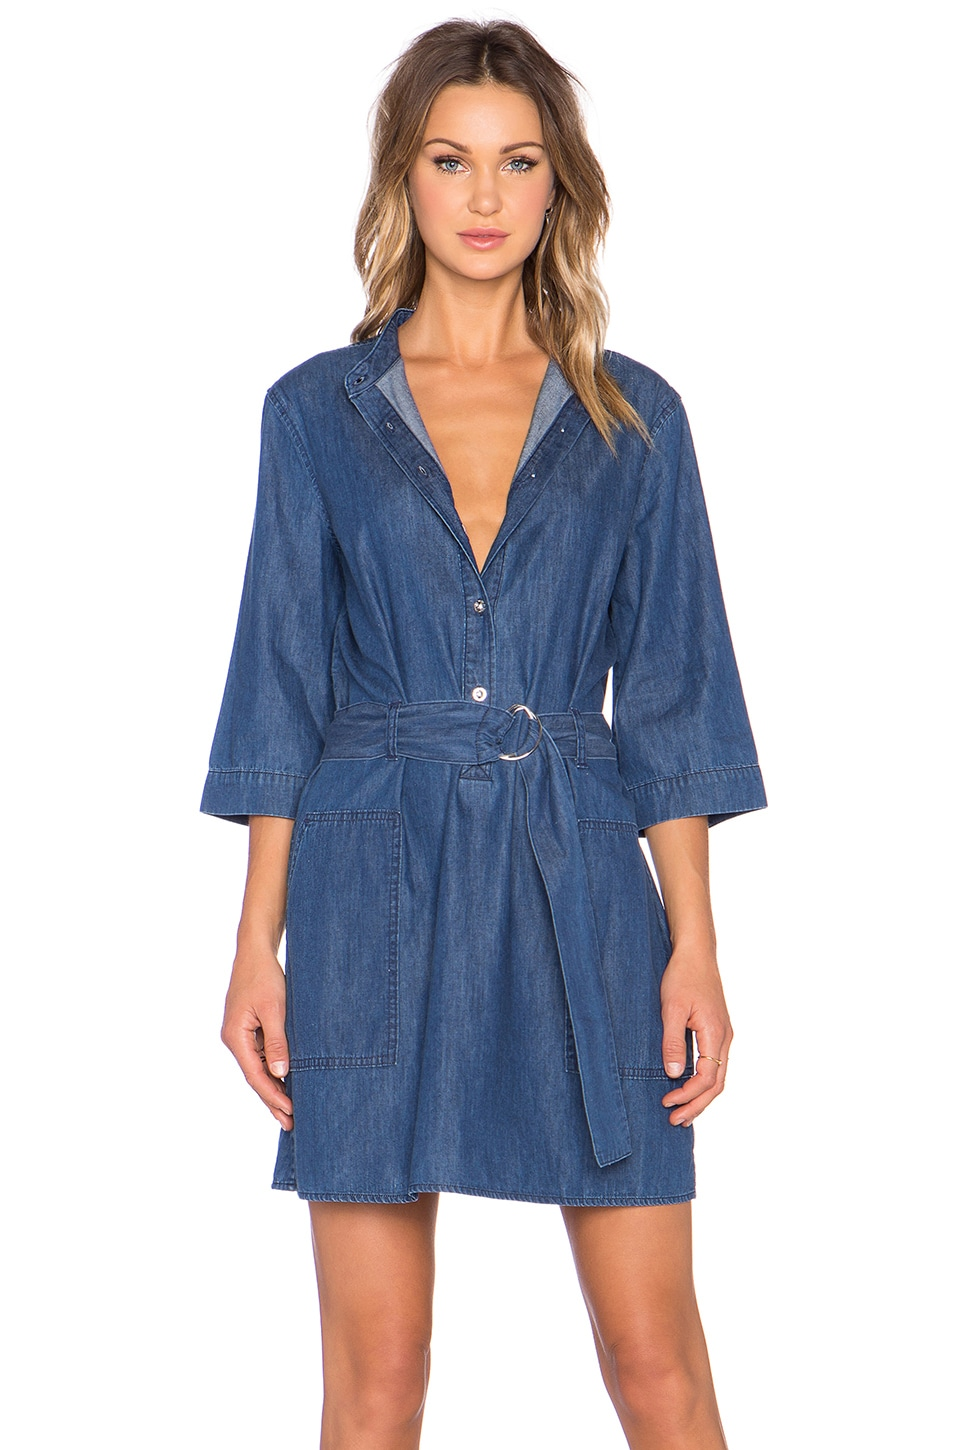 Marc by Marc Jacobs Indigo Denim Dress in Blow Blue